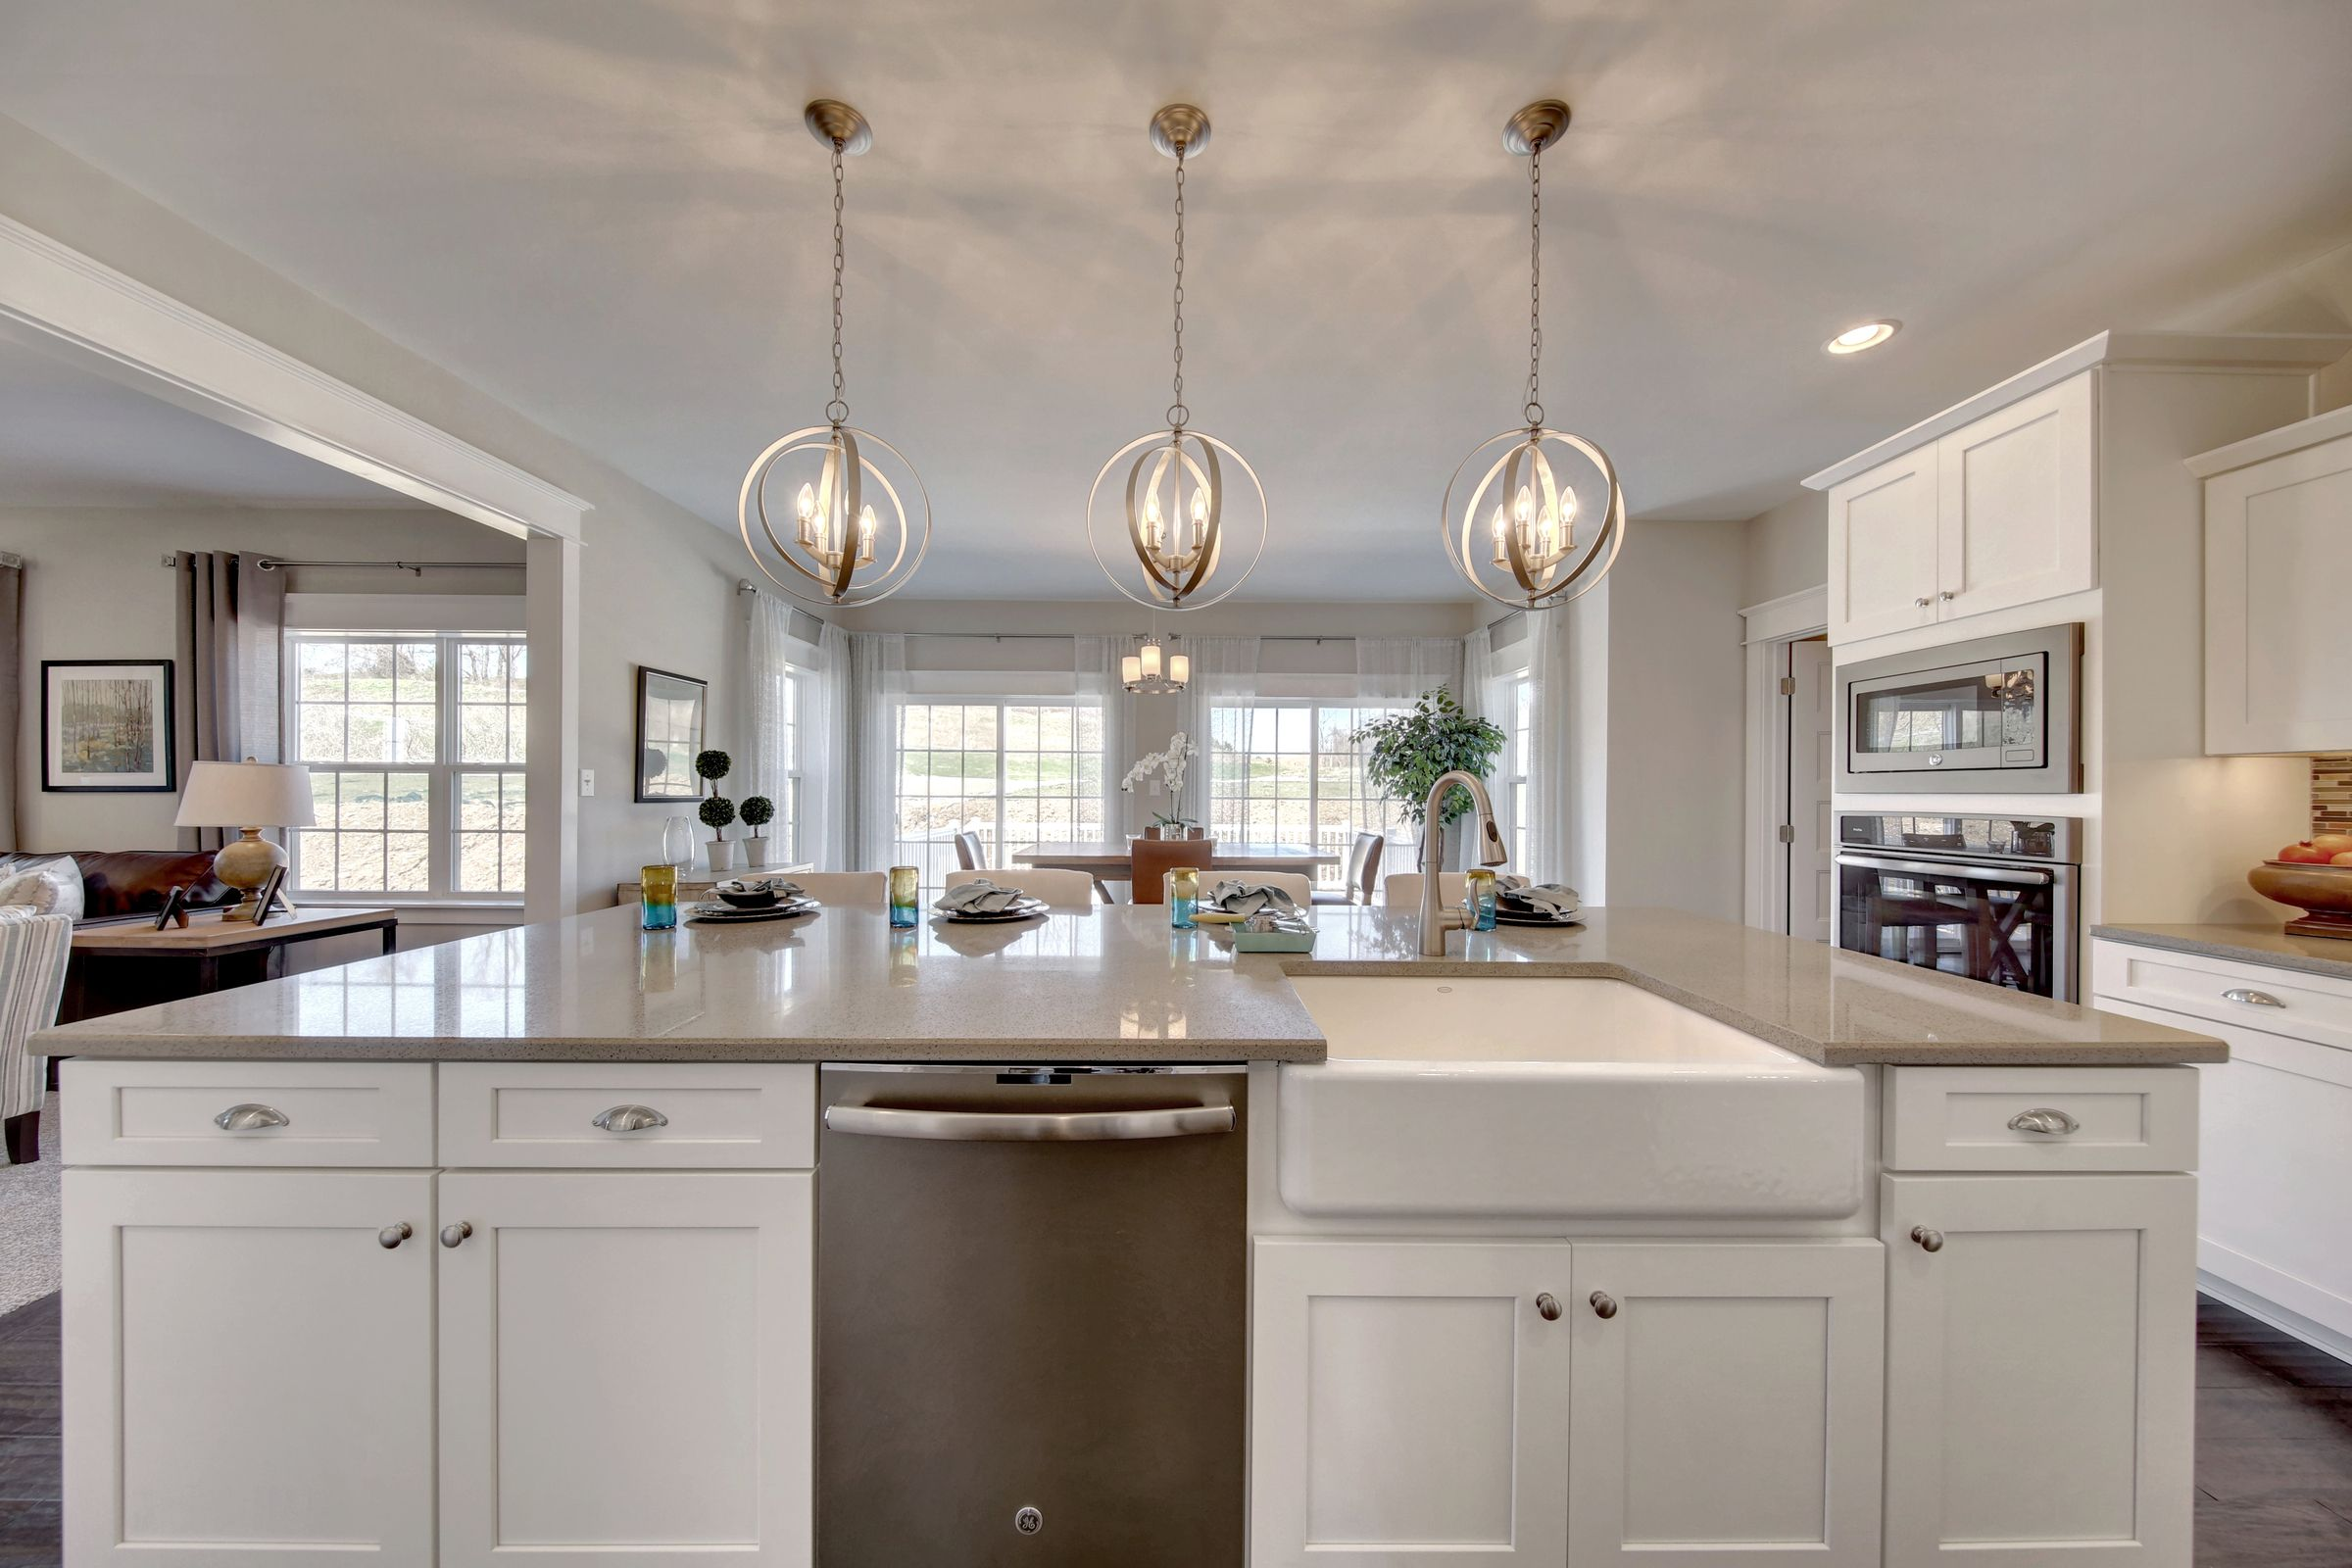 Kitchen featured in the Ethan Heritage By Keystone Custom Homes in York, PA